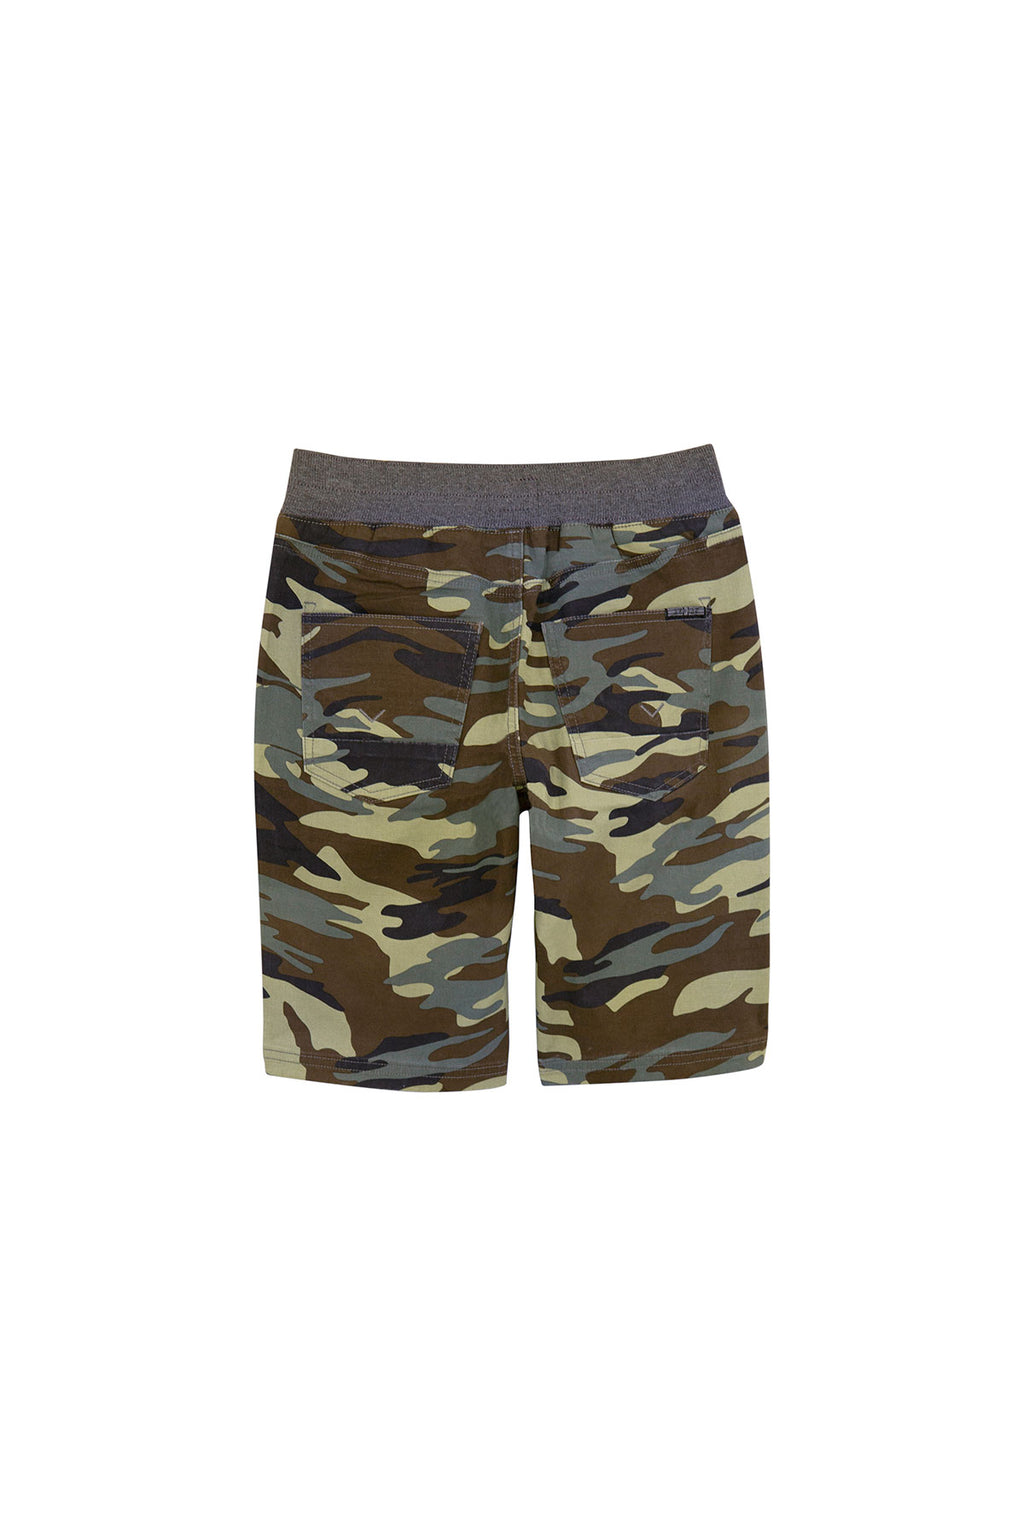 BOYS CAMPBELL SHORT, SIZES 8-20 - OLIVE CAMOUFLAGE - Image 2